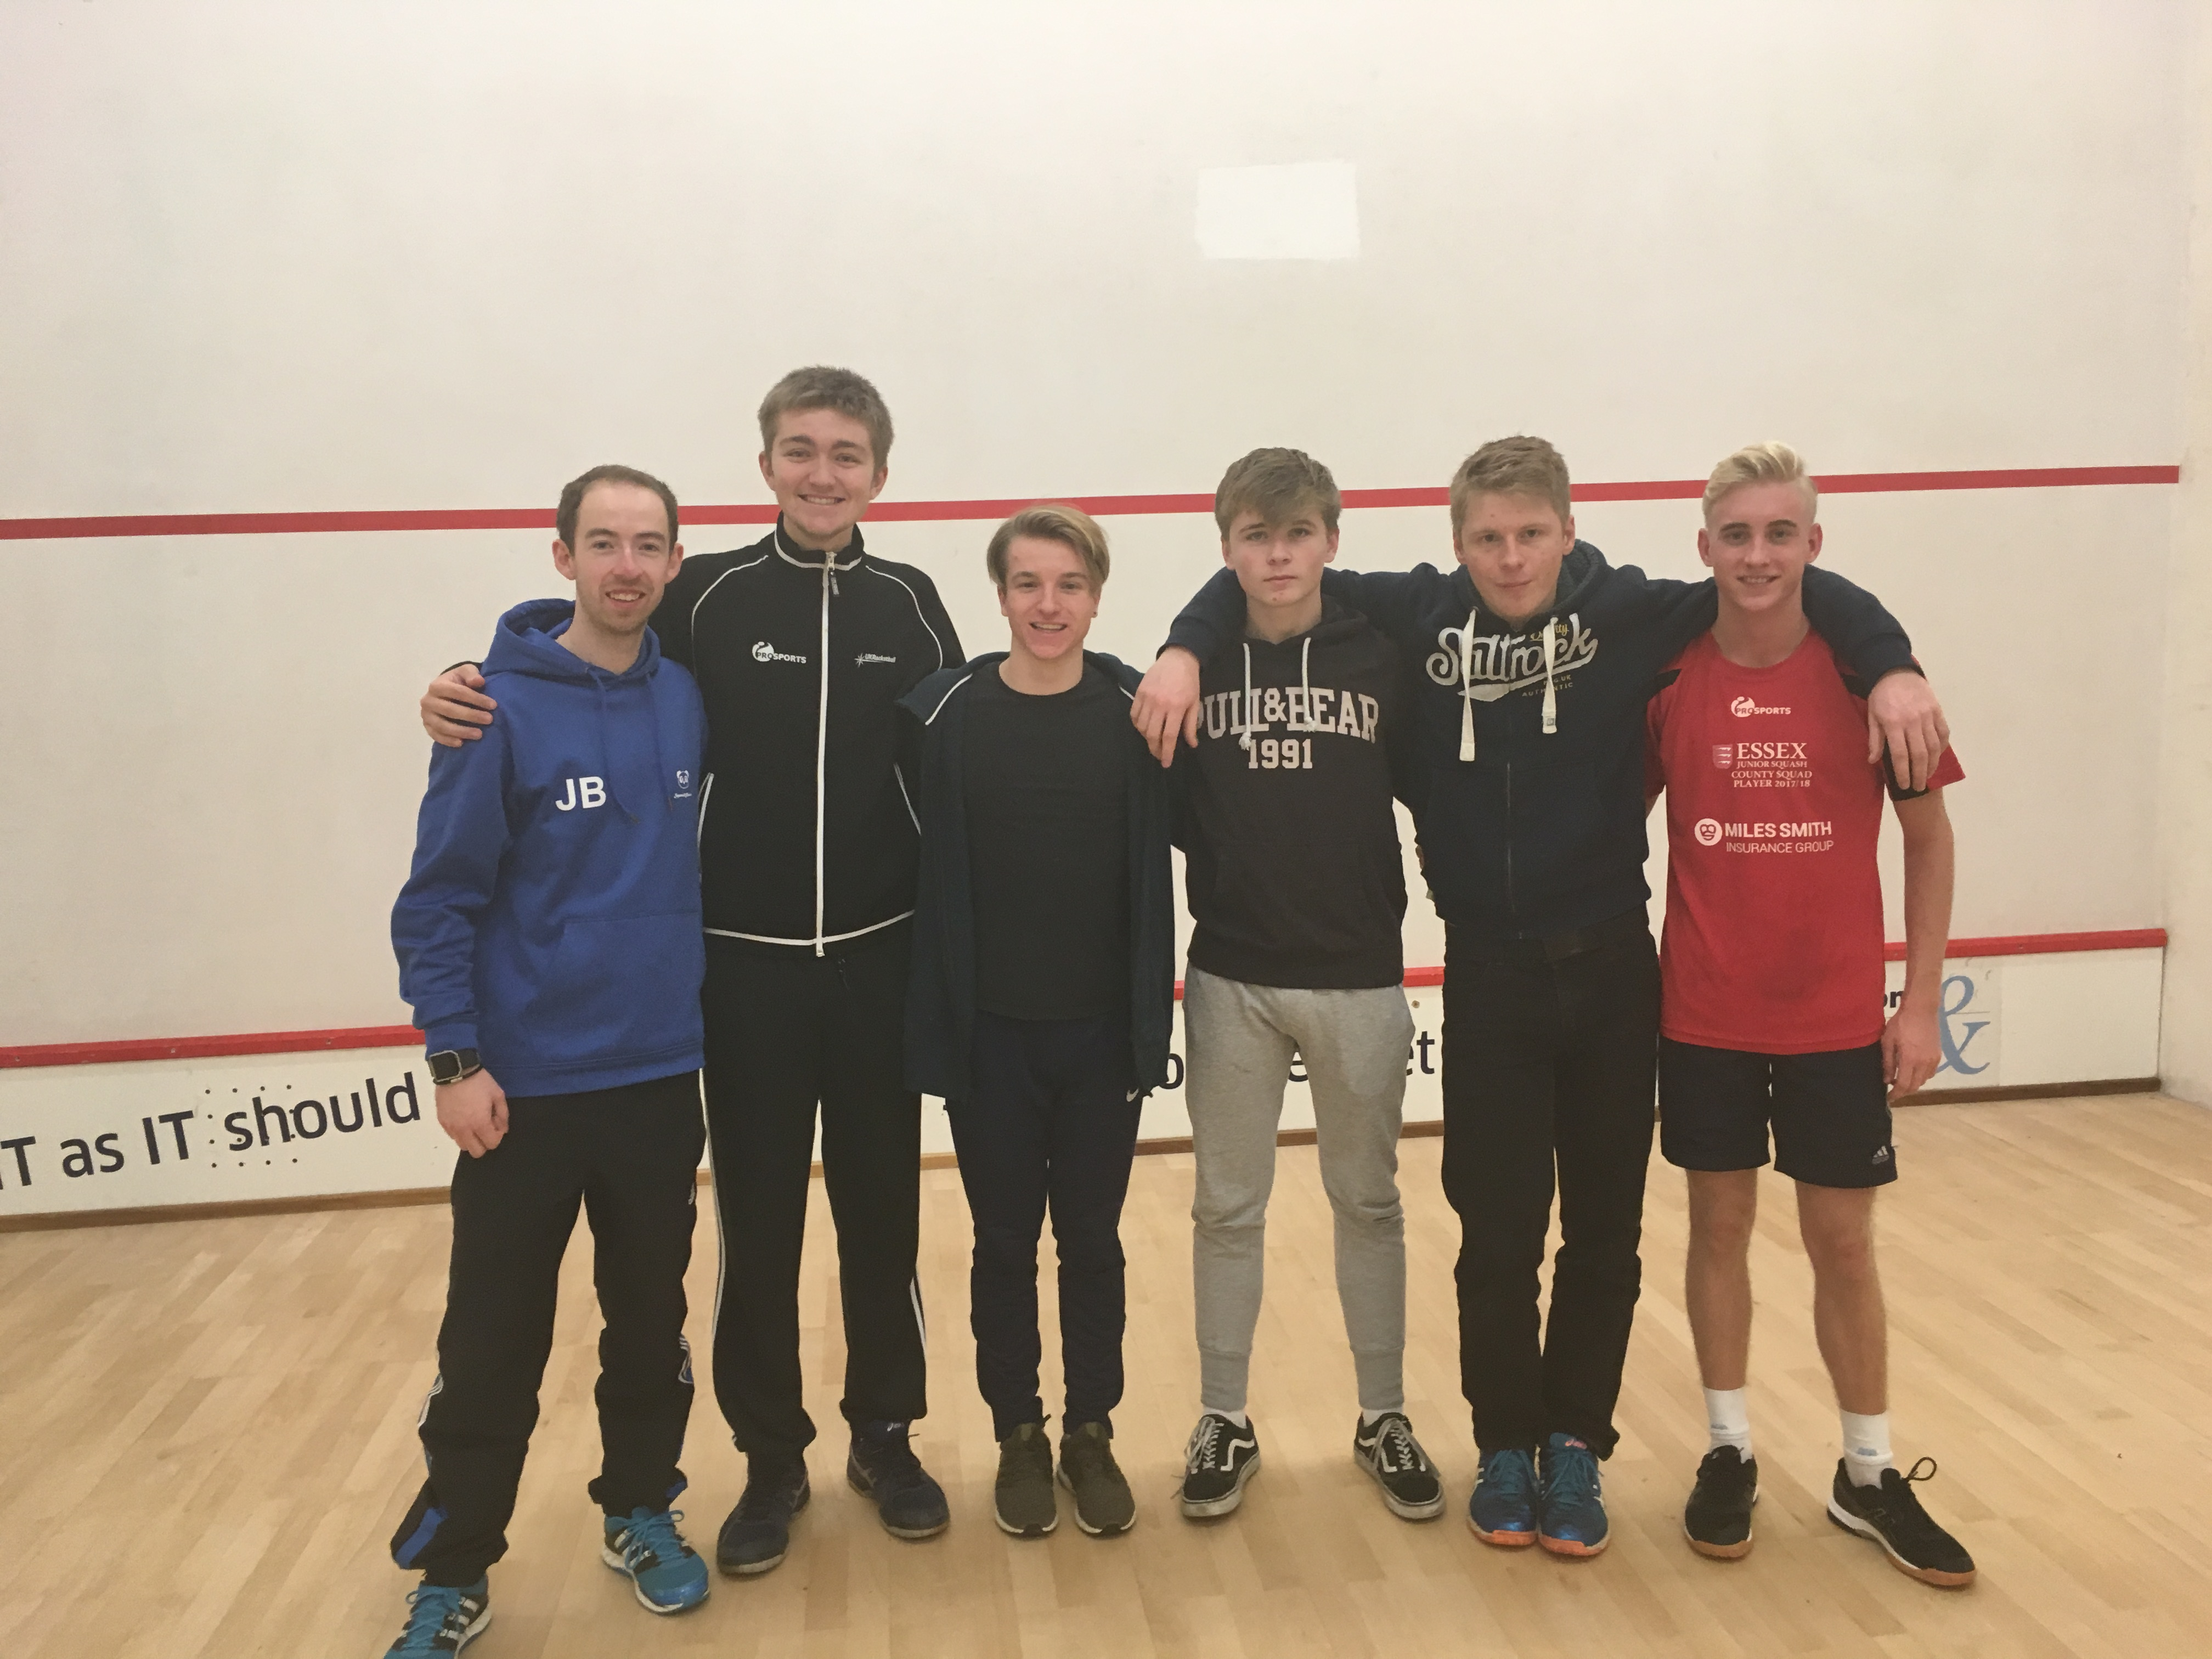 Coach Jake Byrne criss-crossing Essex and Herts with Limitless enthusiasm